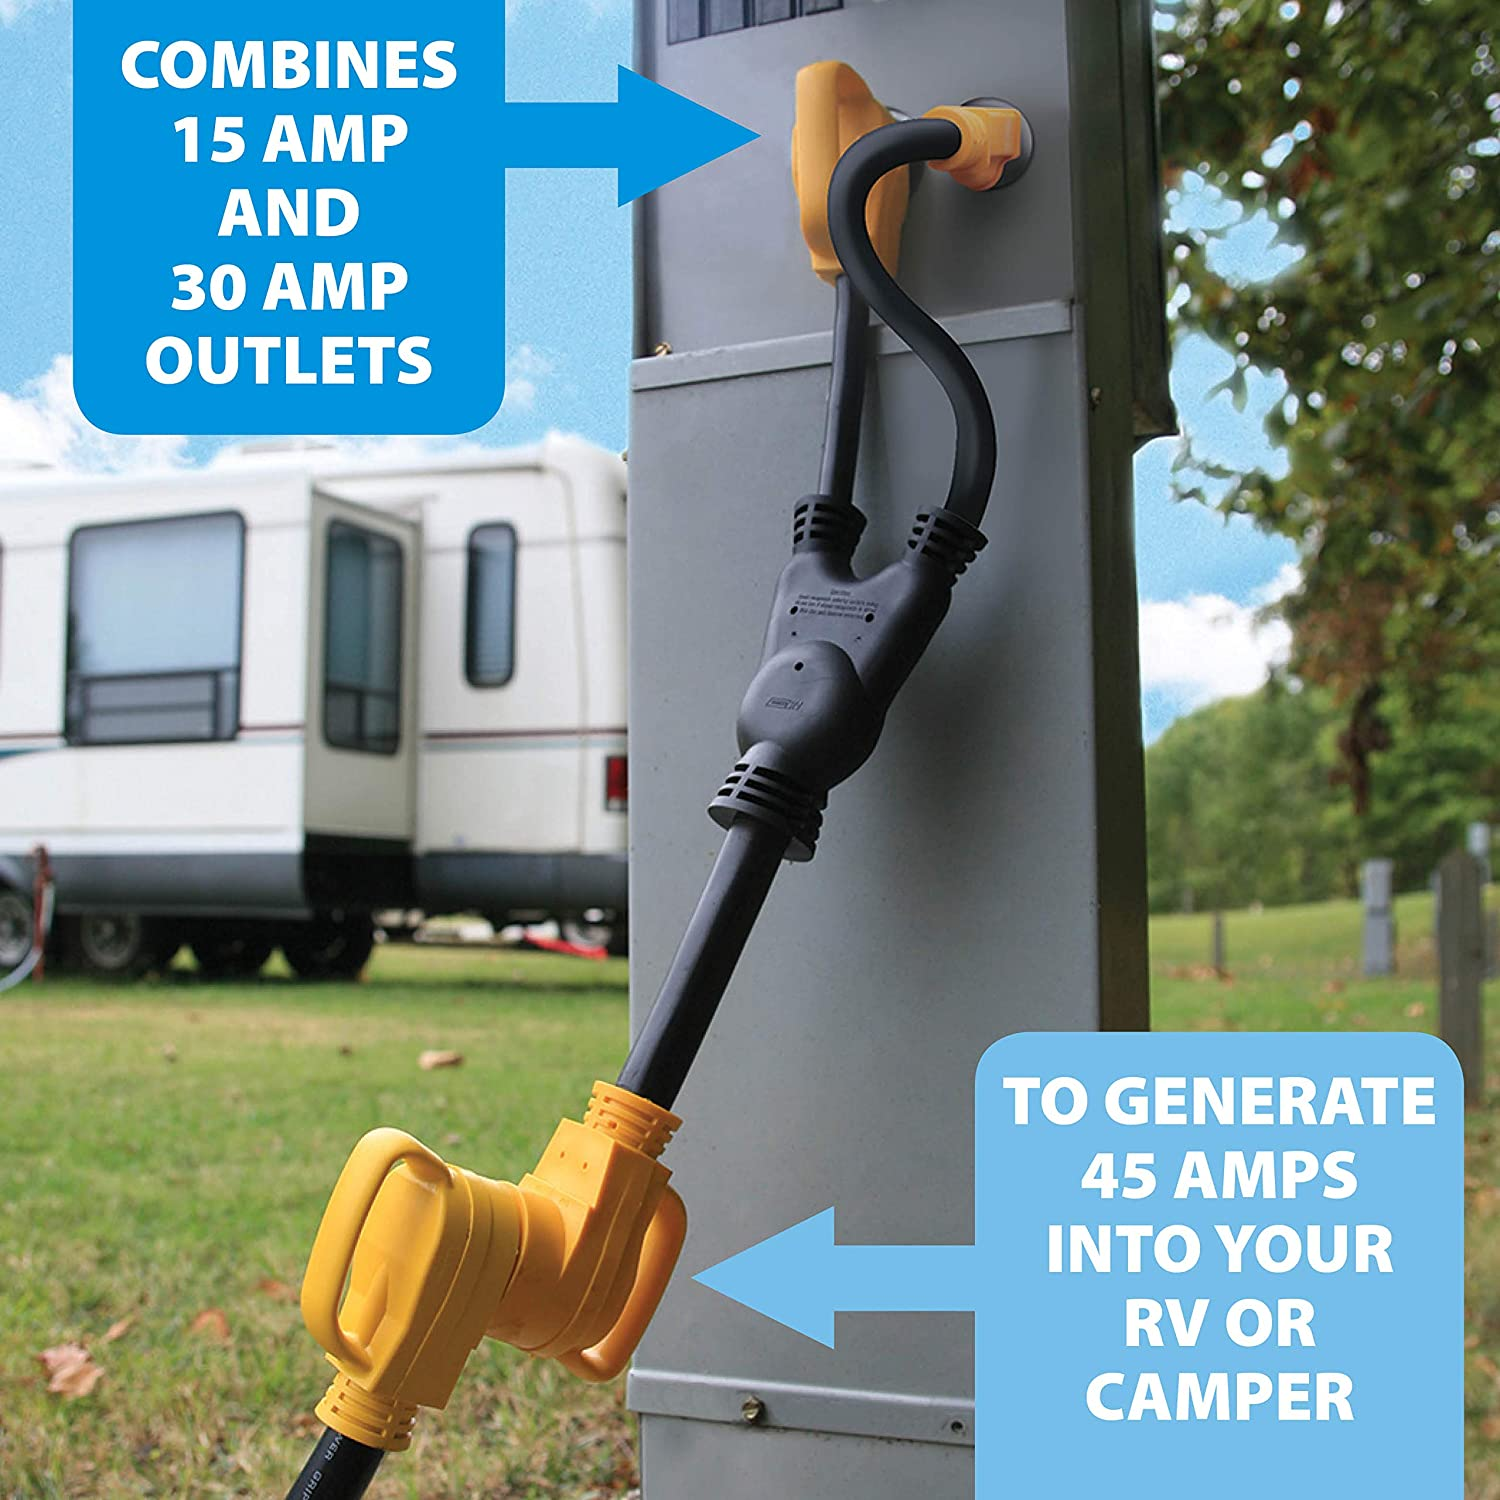 Camco Heavy Duty Powergrip Maximizer 45 Amp Adapter Extension Cord Wiring Diagram In Addition 30 Generator Plug Likewise Combines Power From 15 And Outlets To Generate Amps Into Your Rv Or Camper